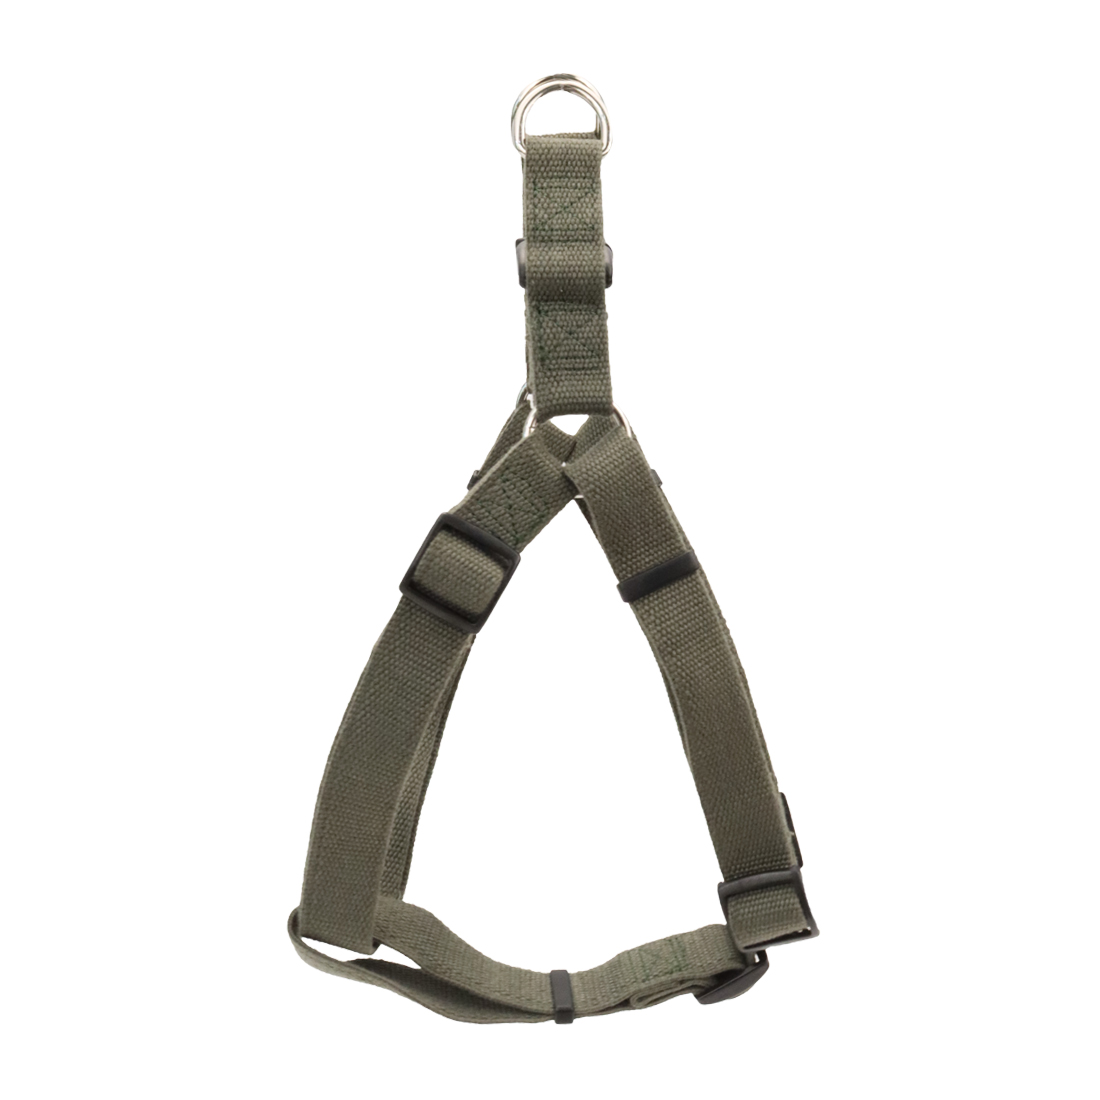 New Earth Soy Comfort Wrap Adjustable Dog Harness, Forest, 3/4-inx20-30-in